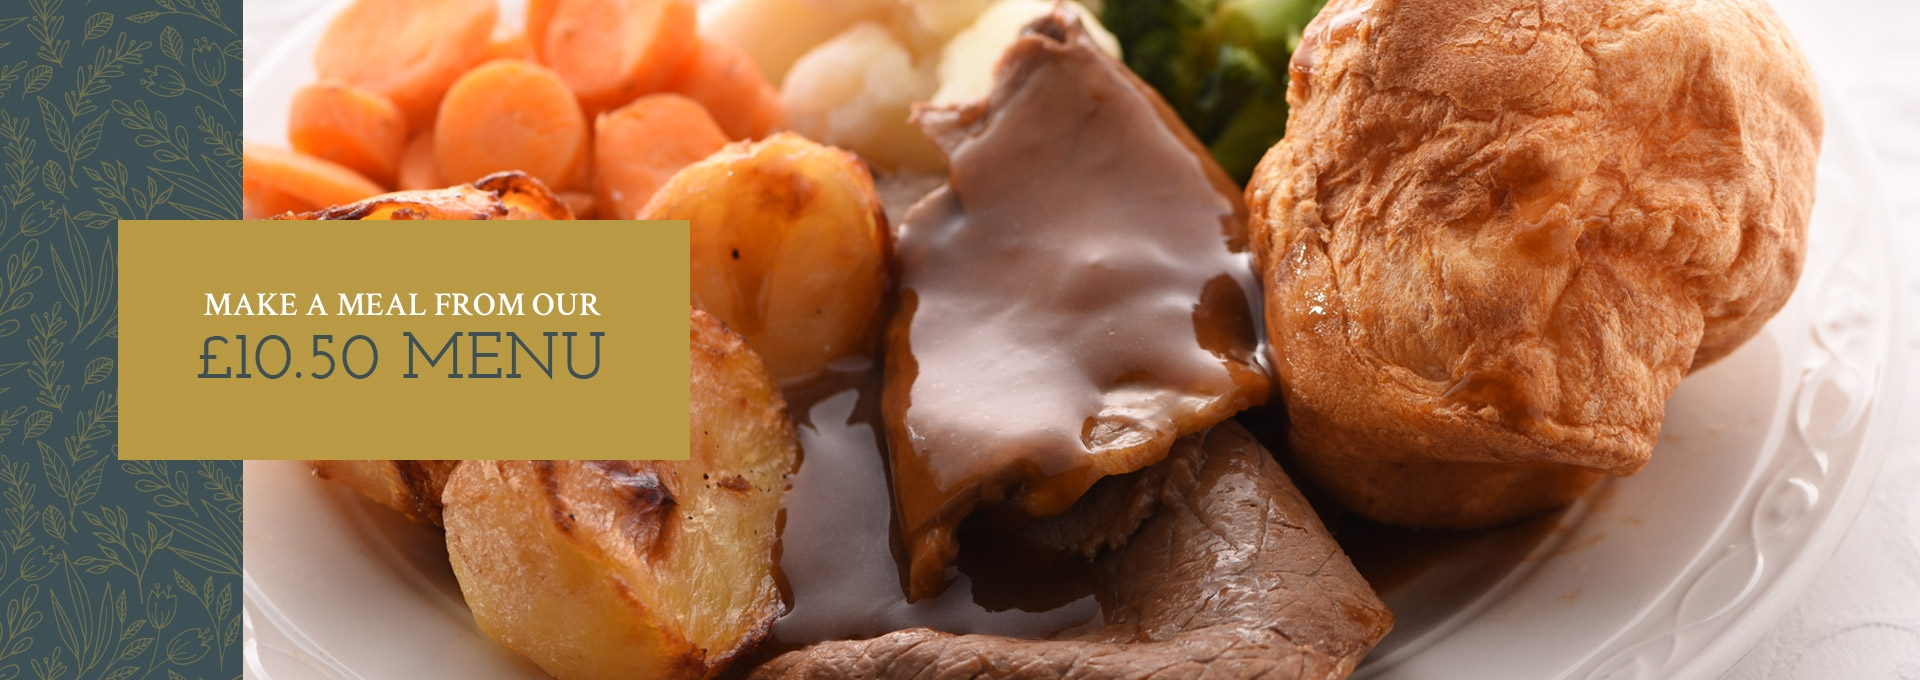 Make a meal from our £10.50 menu